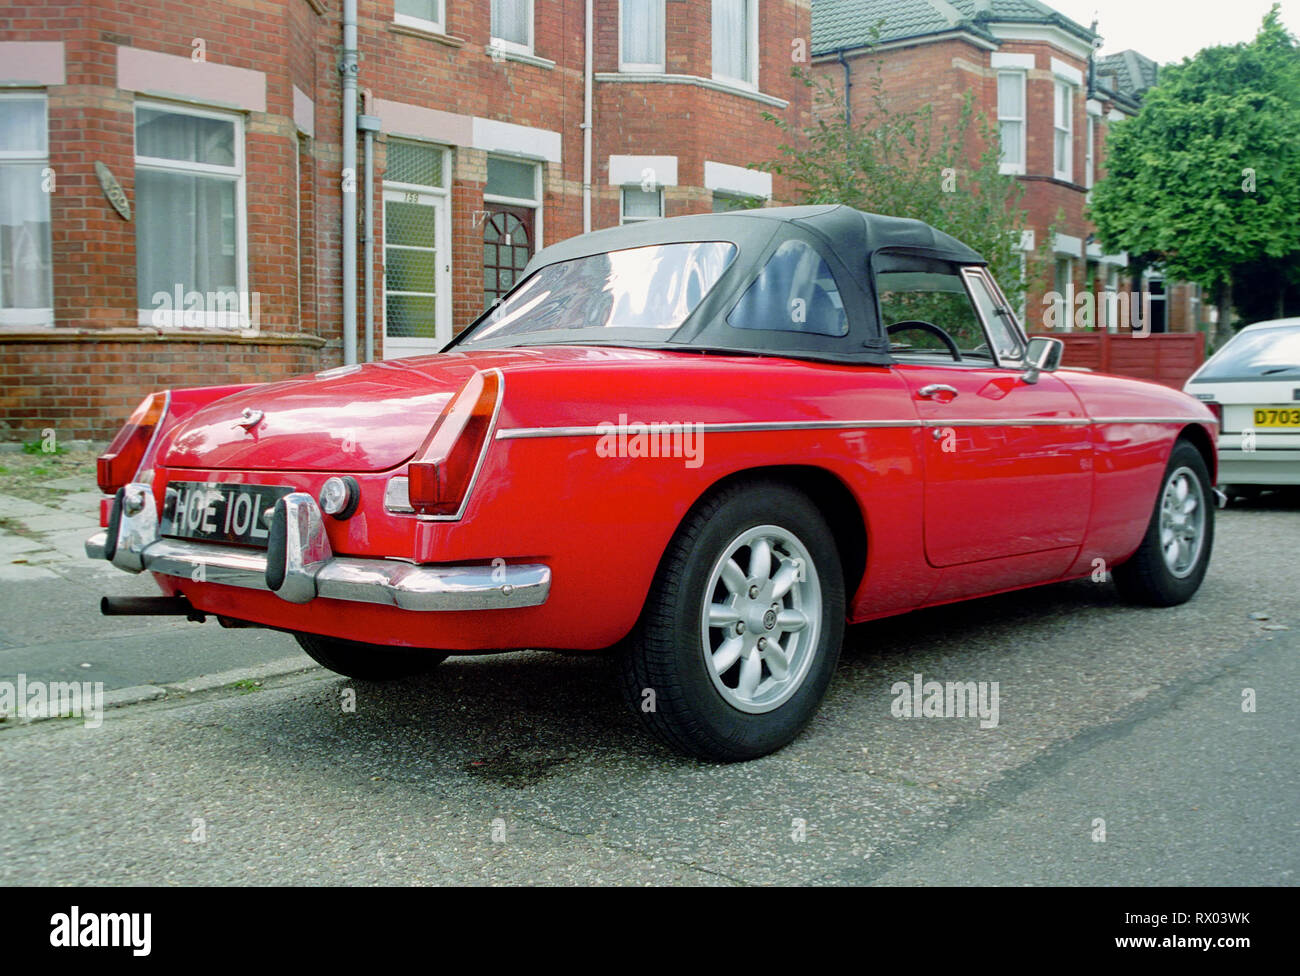 1971 MGB Roadster red convertible - Stock Image